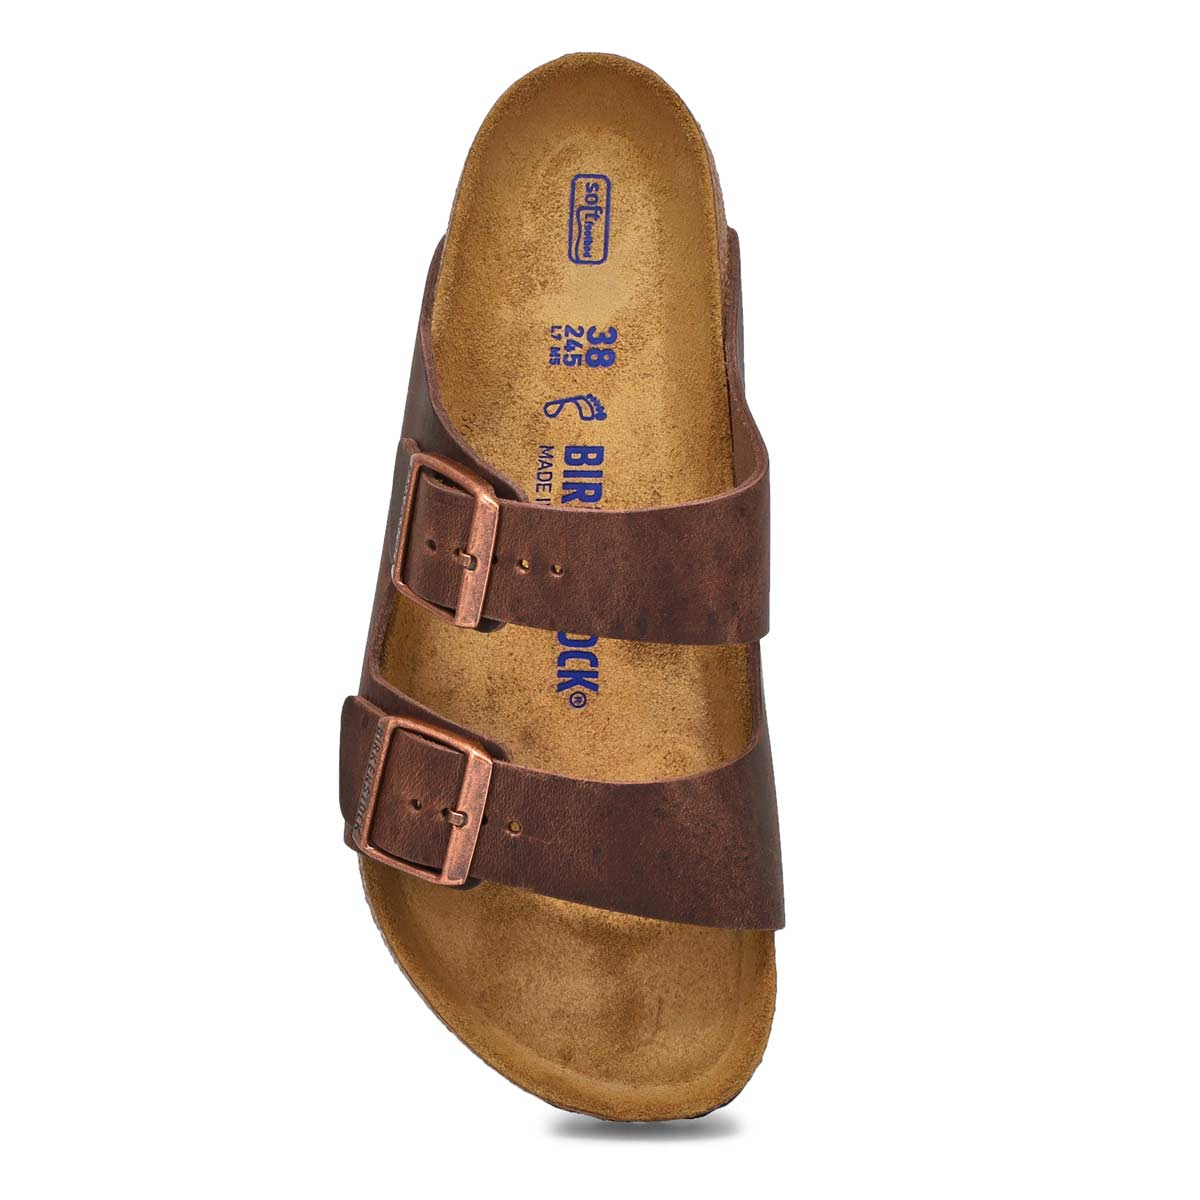 Lds Arizona SF Havana 2 strap sandal